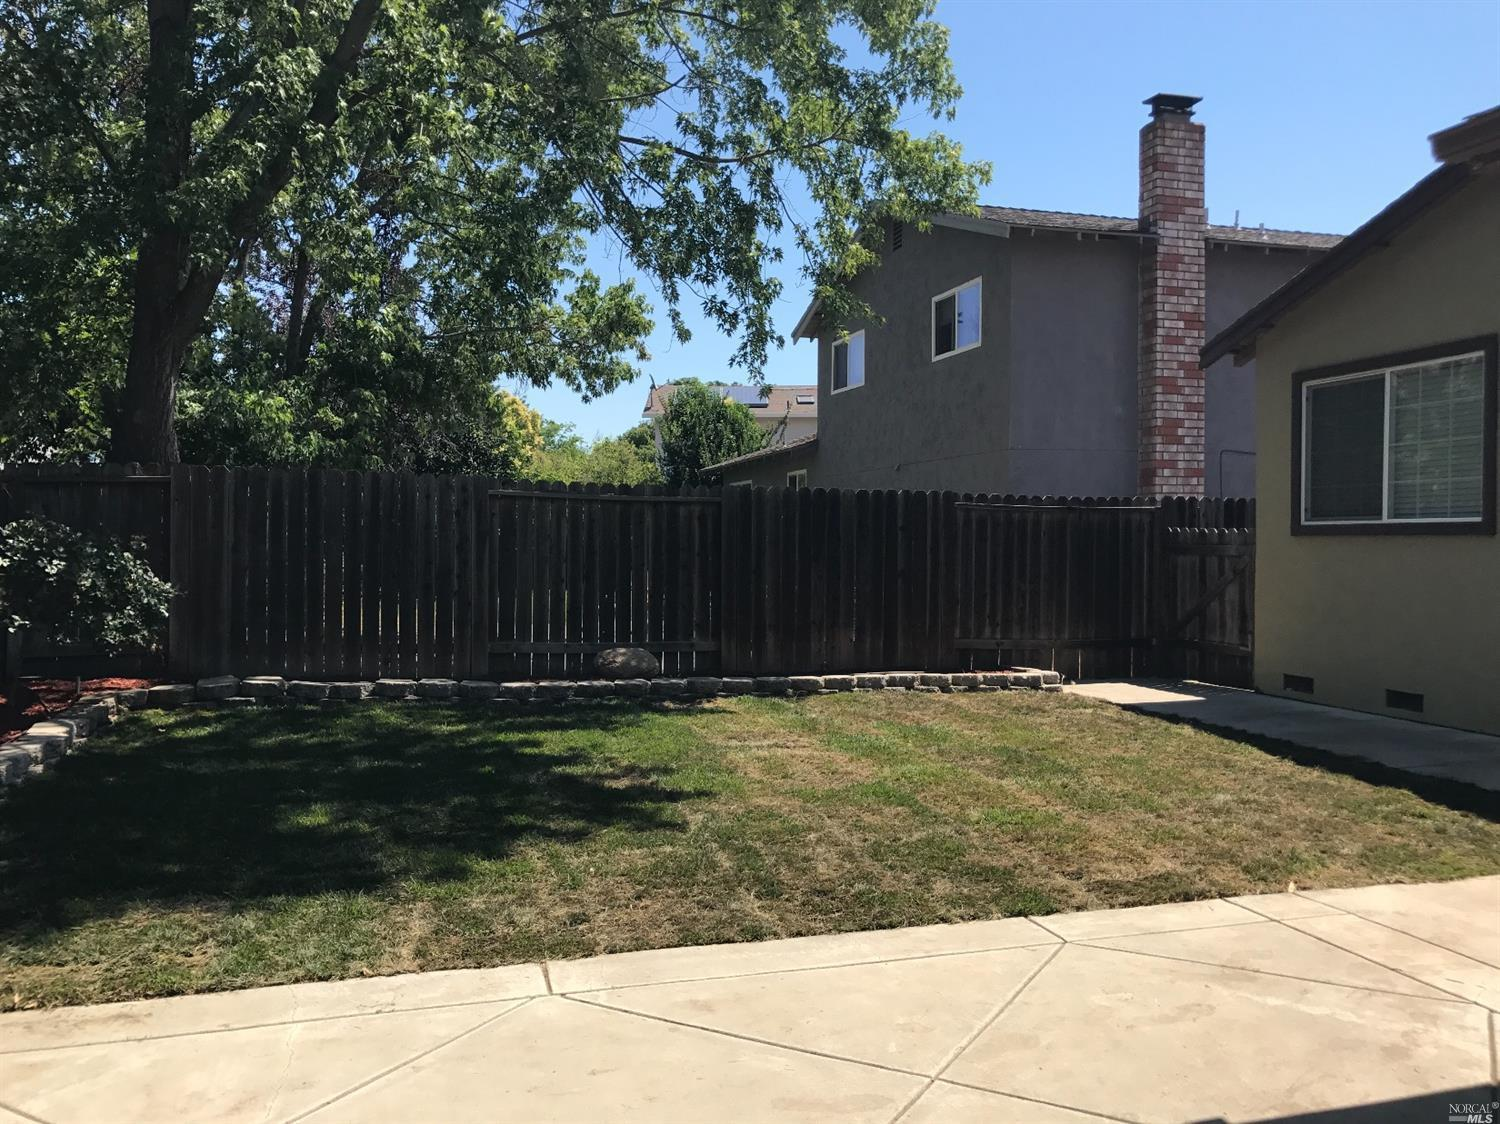 137 Bel Air drive Vacaville, CA 95687 - MLS #: 21714074